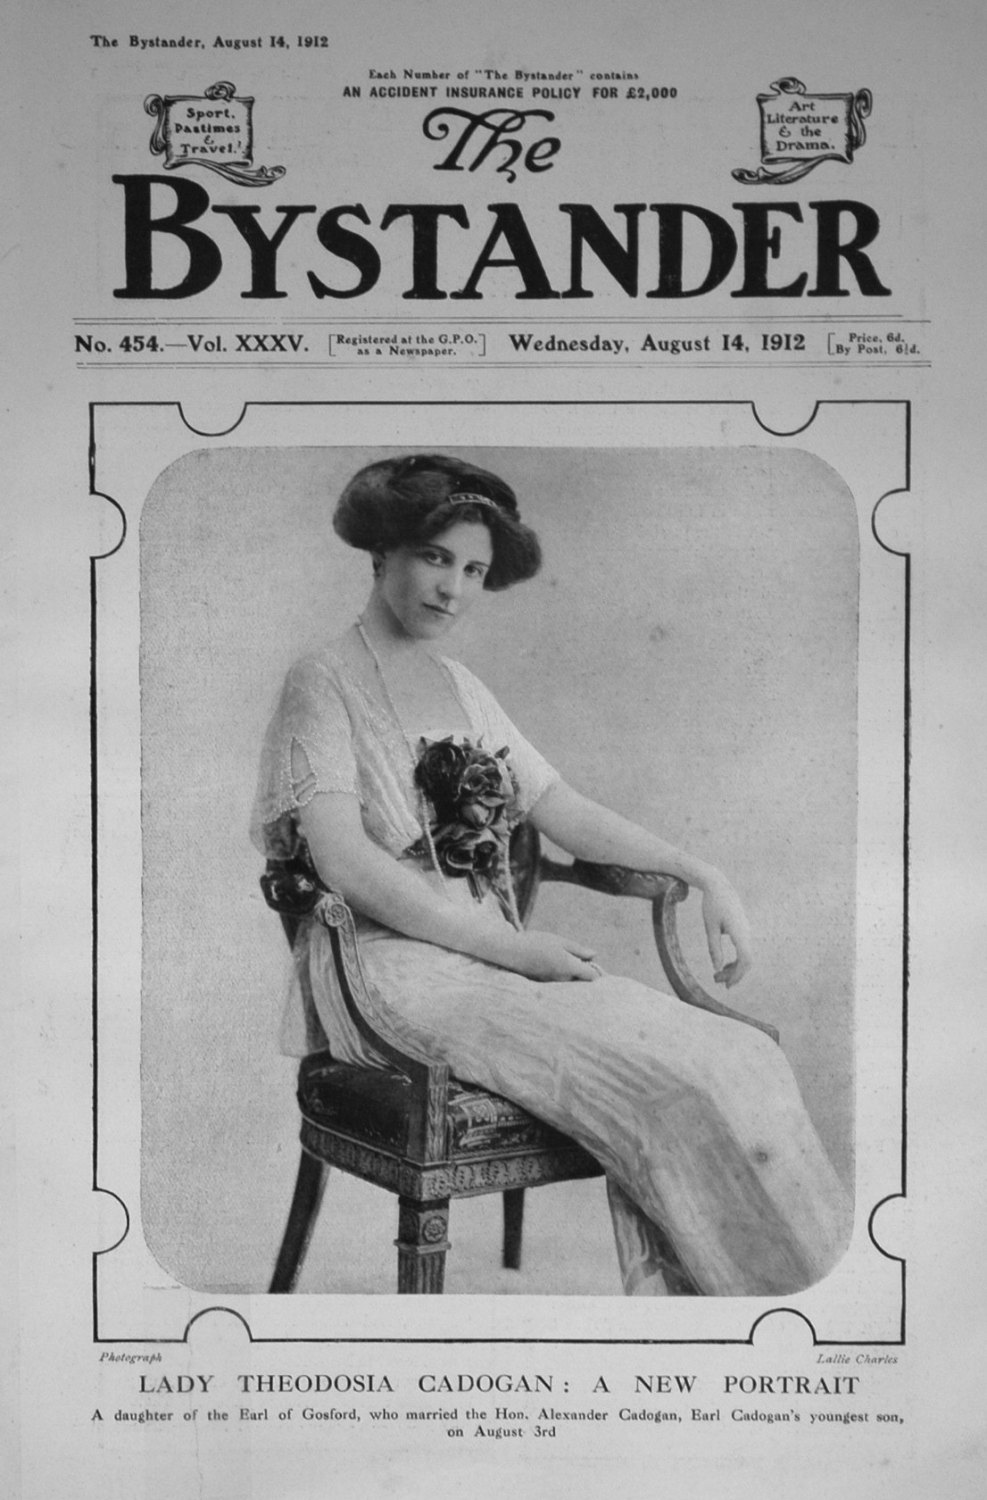 The Bystander August 14th 1912.